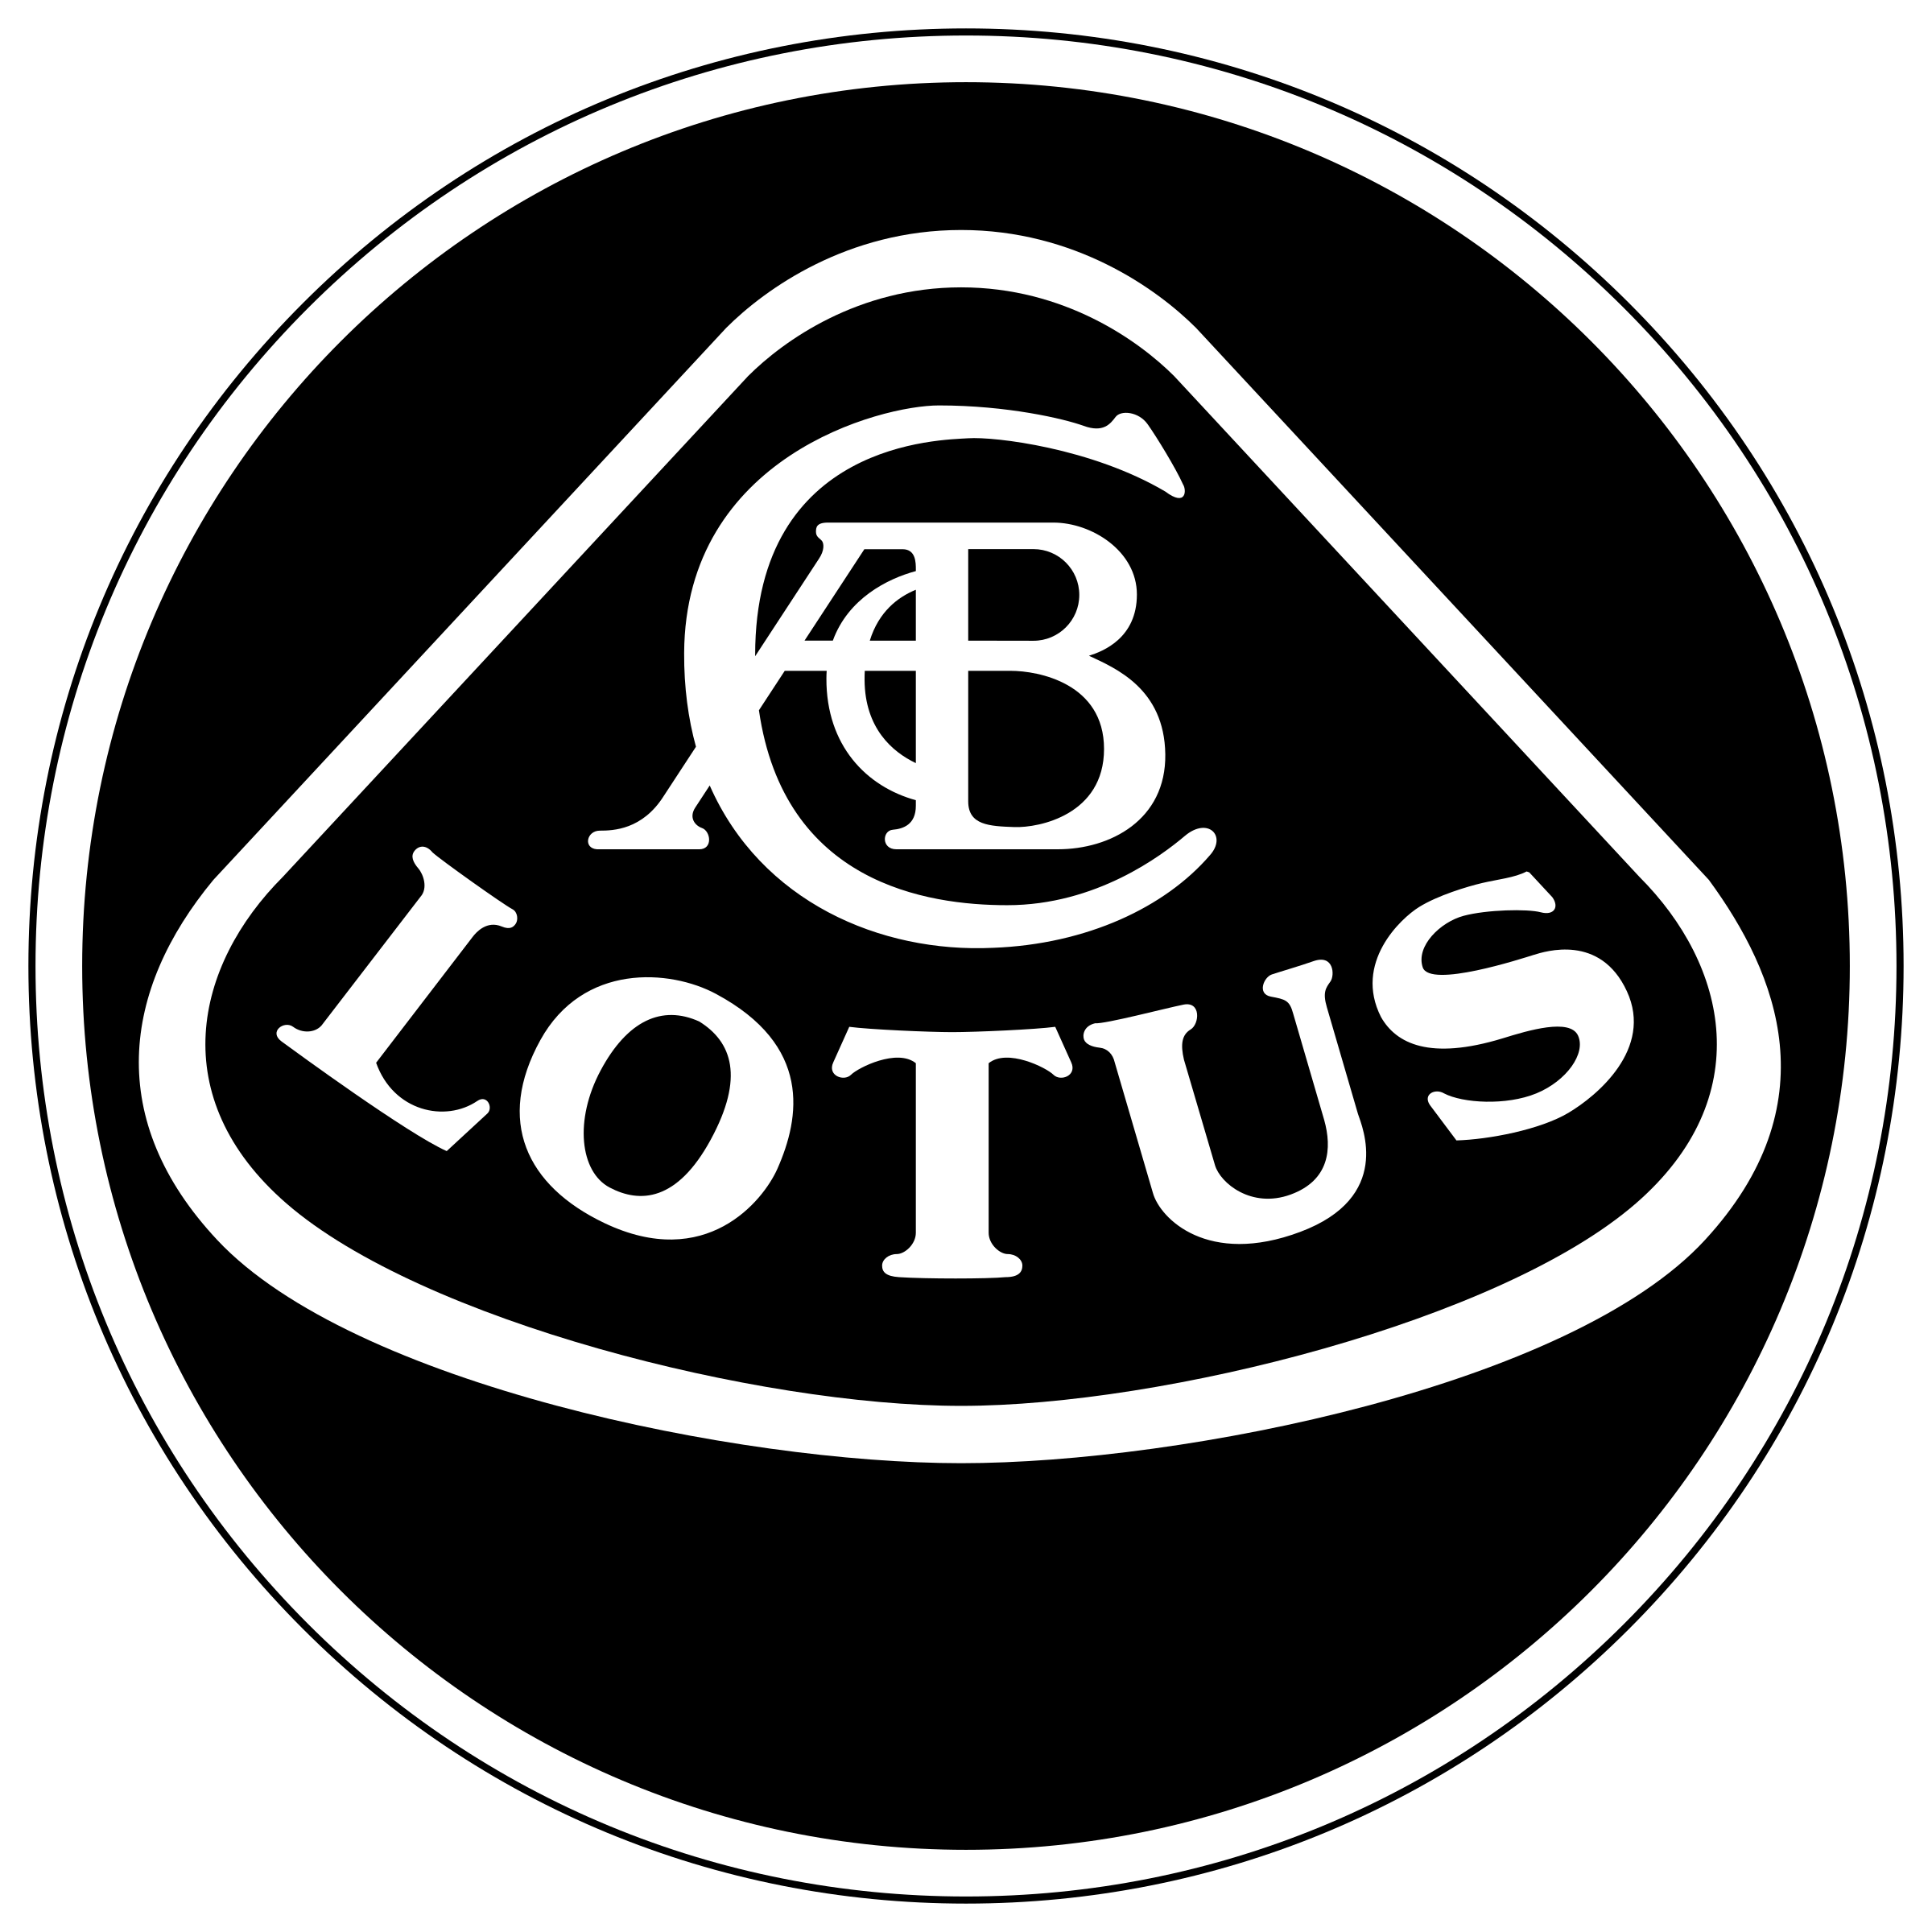 Lotus logo png. Transparent svg vector freebie